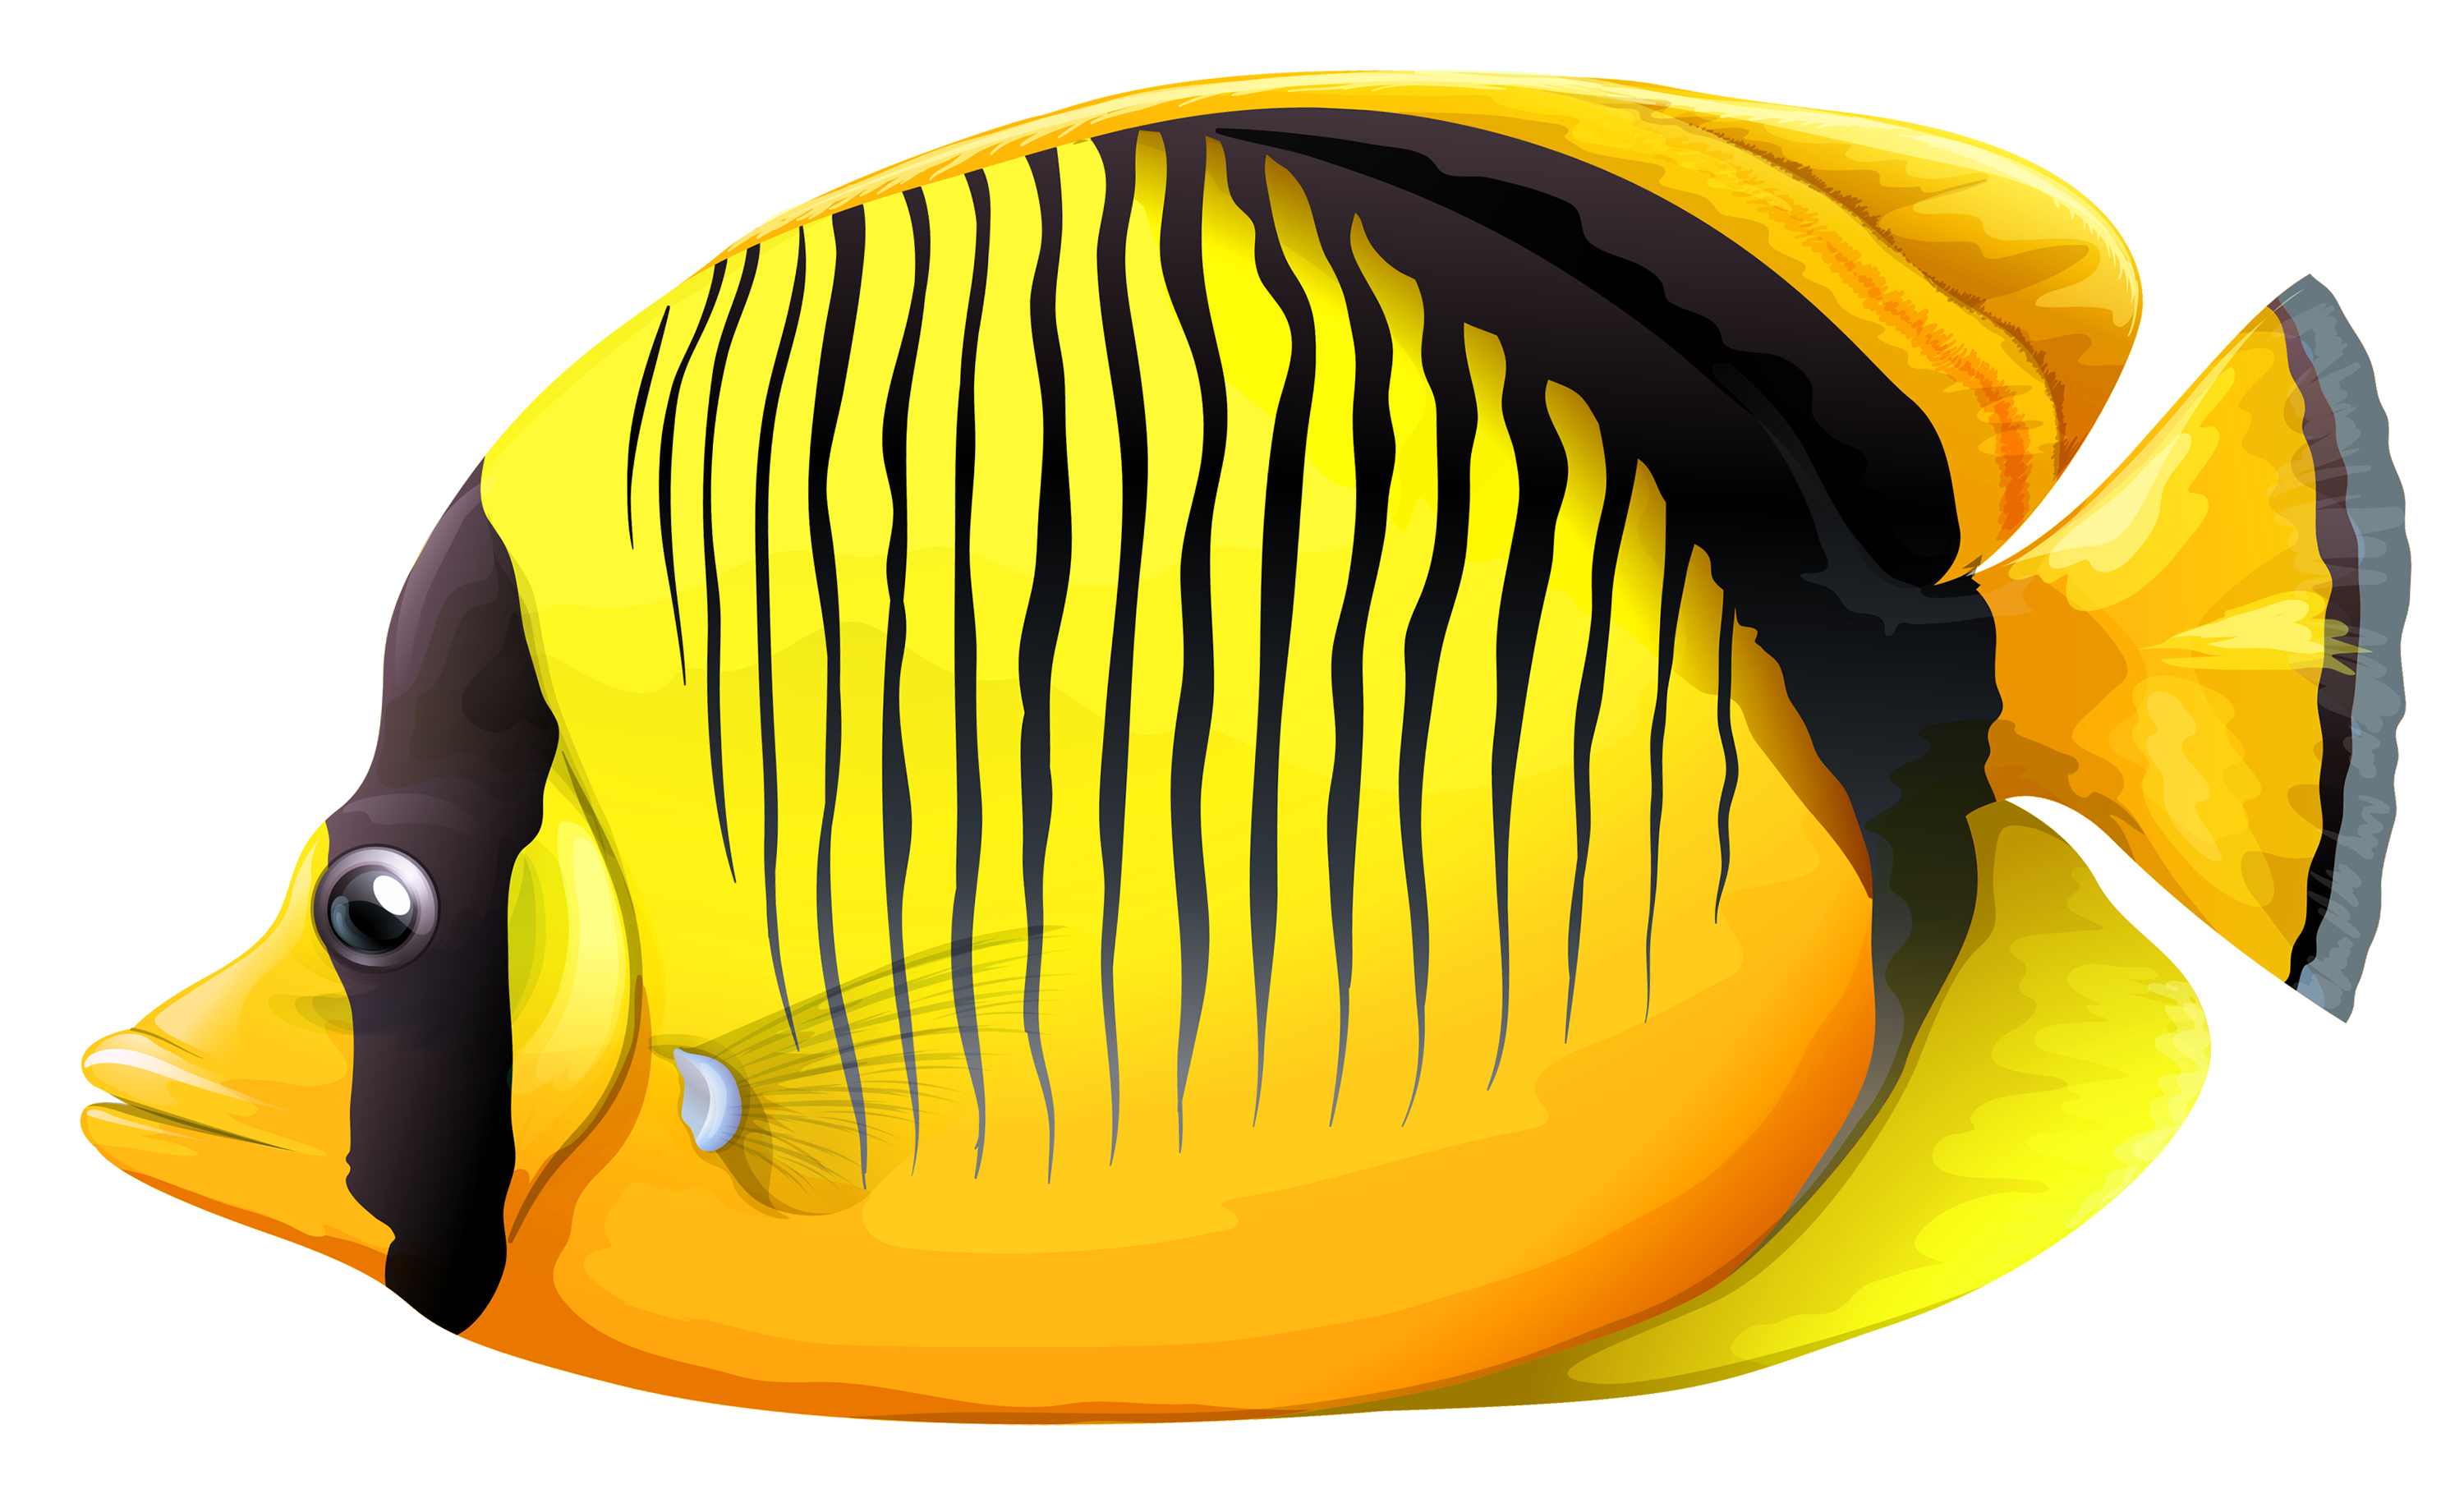 Yellow butterfly png best. Fish clipart creepy